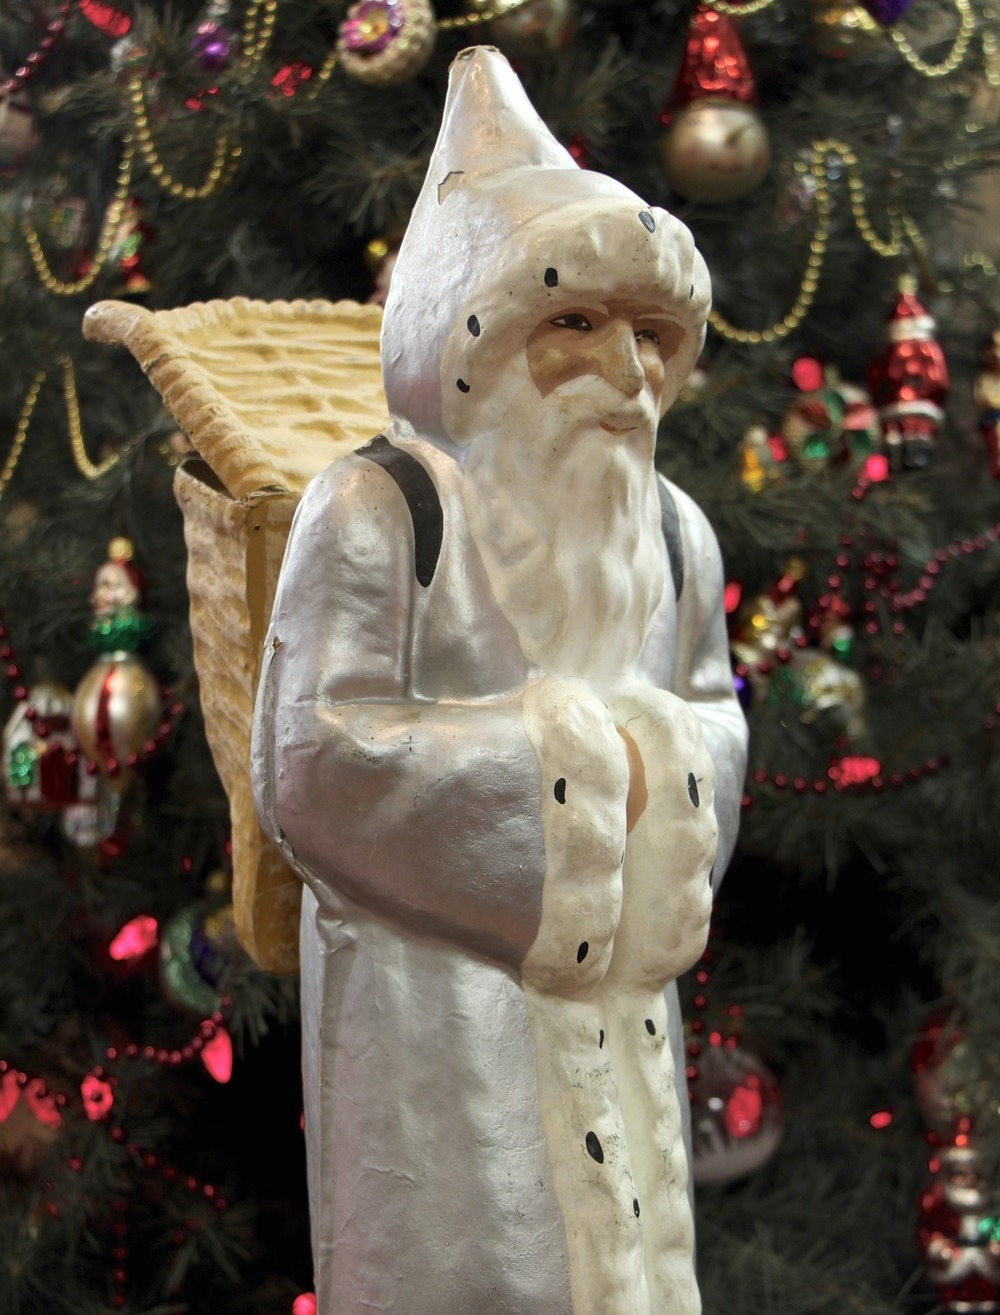 Pere Noel is the French equivalent of the American Santa Claus. He wears a long, hooded robe edged with white fur, and carries presents in a basket like those used by grape harvesters. This papier-mache figure of Pere Noel served as a candy container, and was featured in the Museum's  Christmas Traditions in Many Lands  exhibition (Friday, November 27, 2015 through January 10, 2016). Credit: Glencairn Museum.